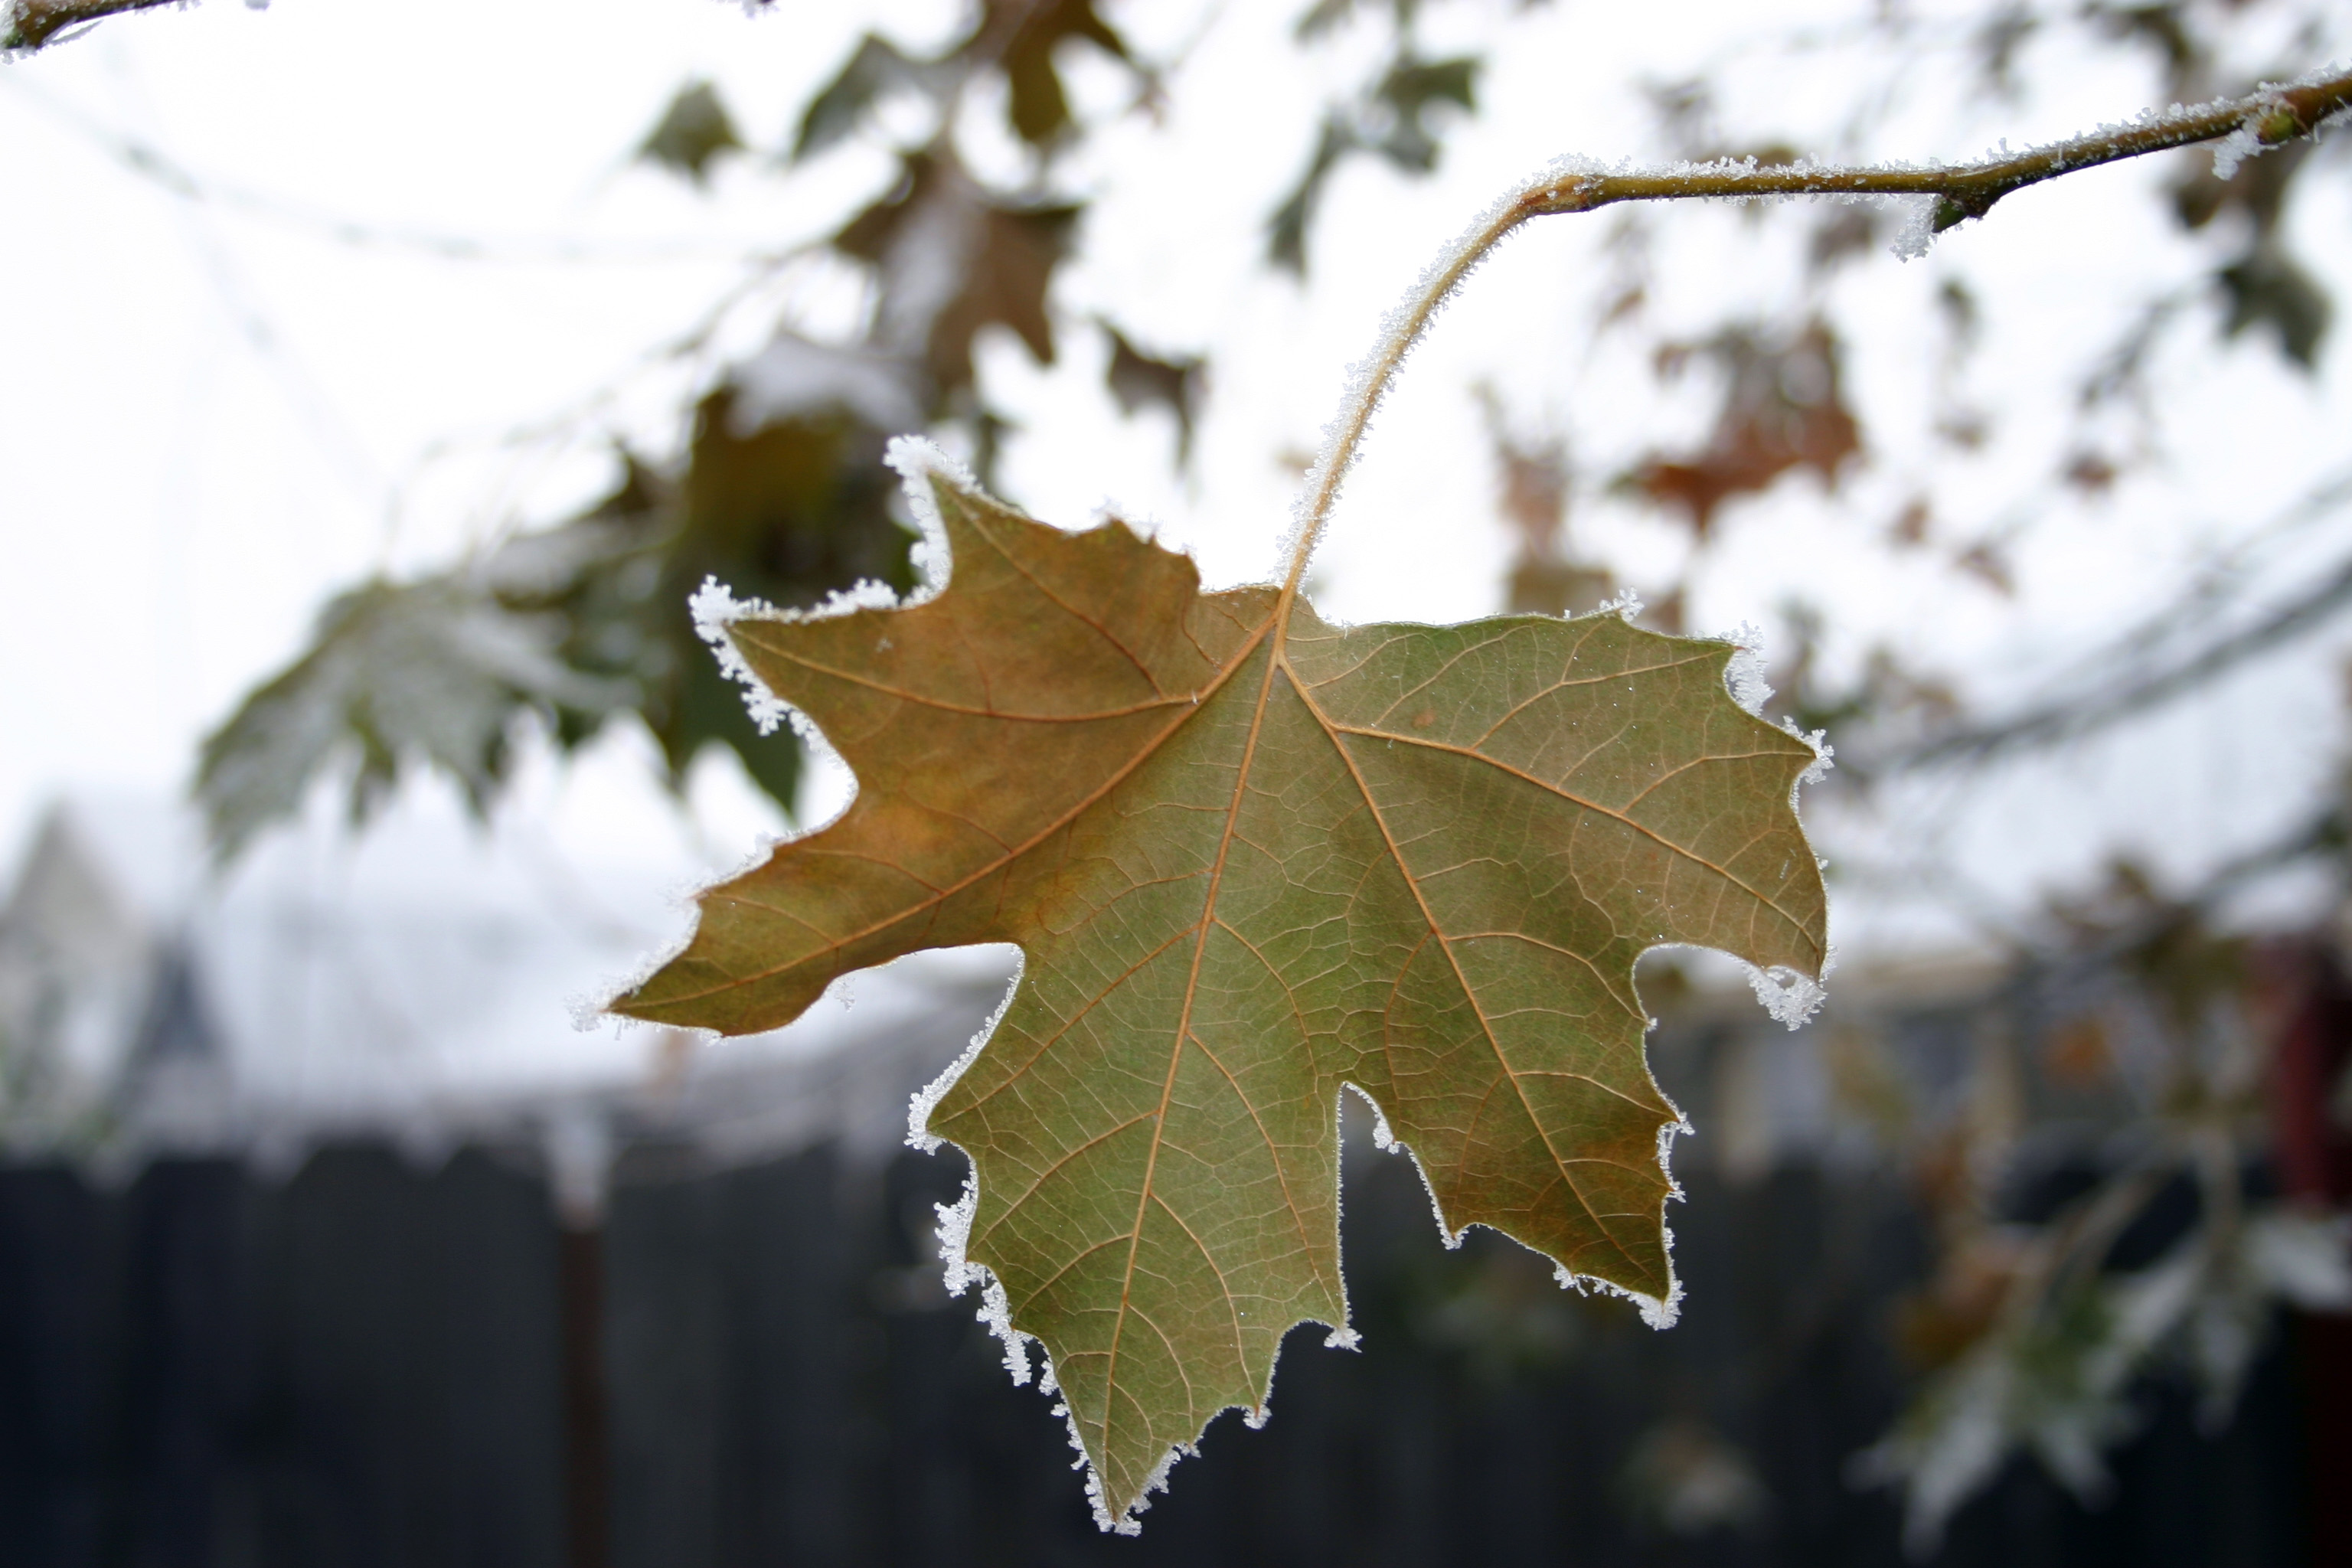 Sycamore leaf with hoary frost.